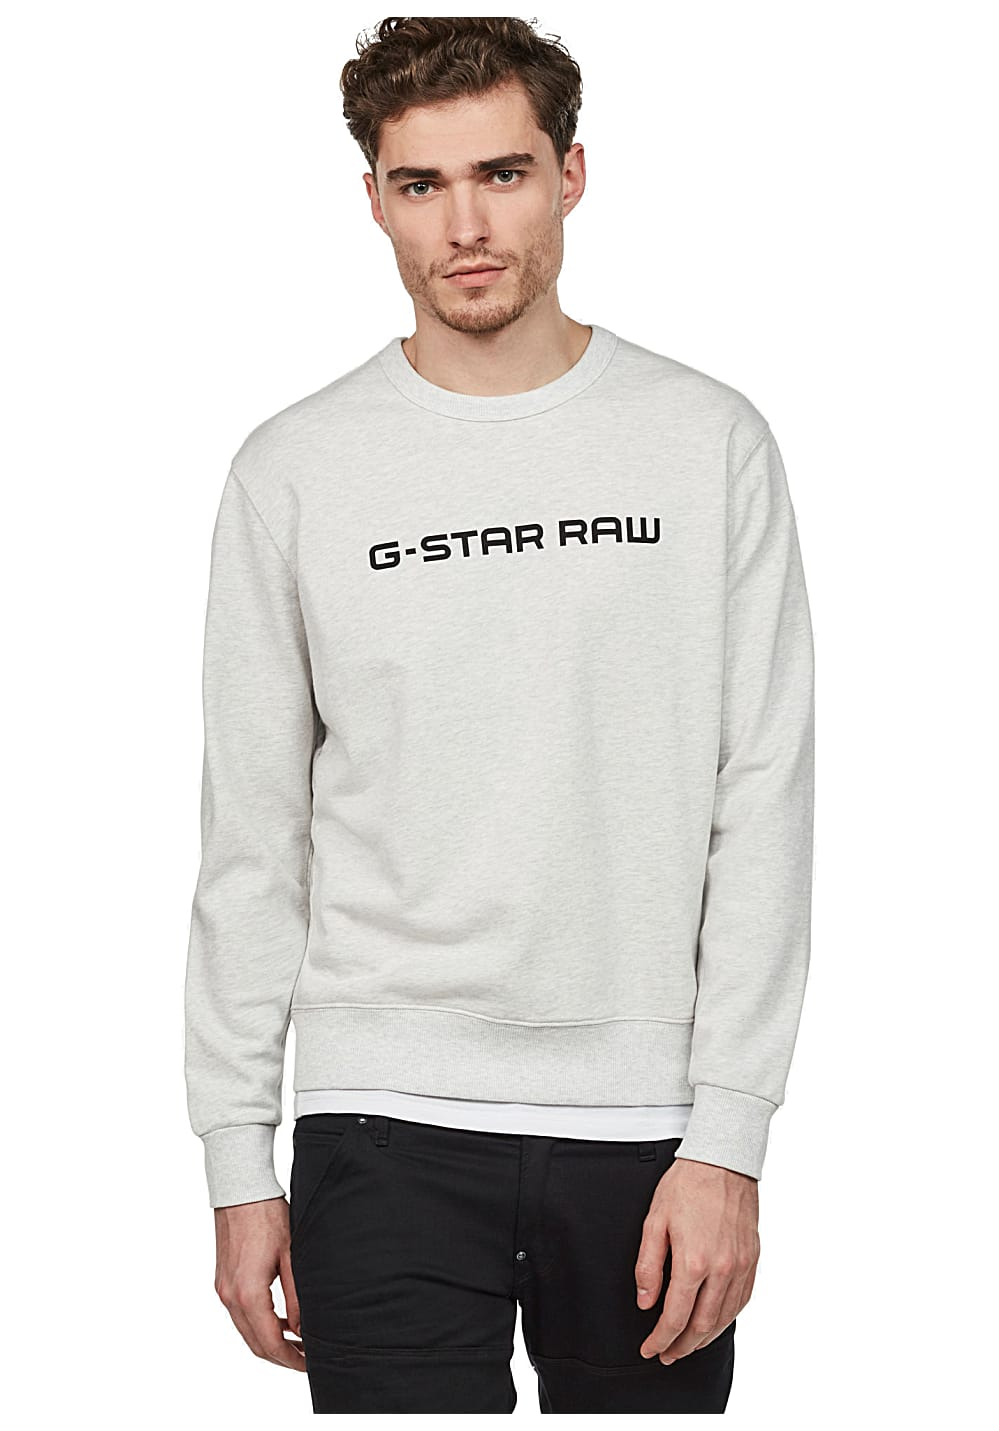 R Star Blanc Sweat Sports Loaq G Planet Homme Pour wEAZxTqd